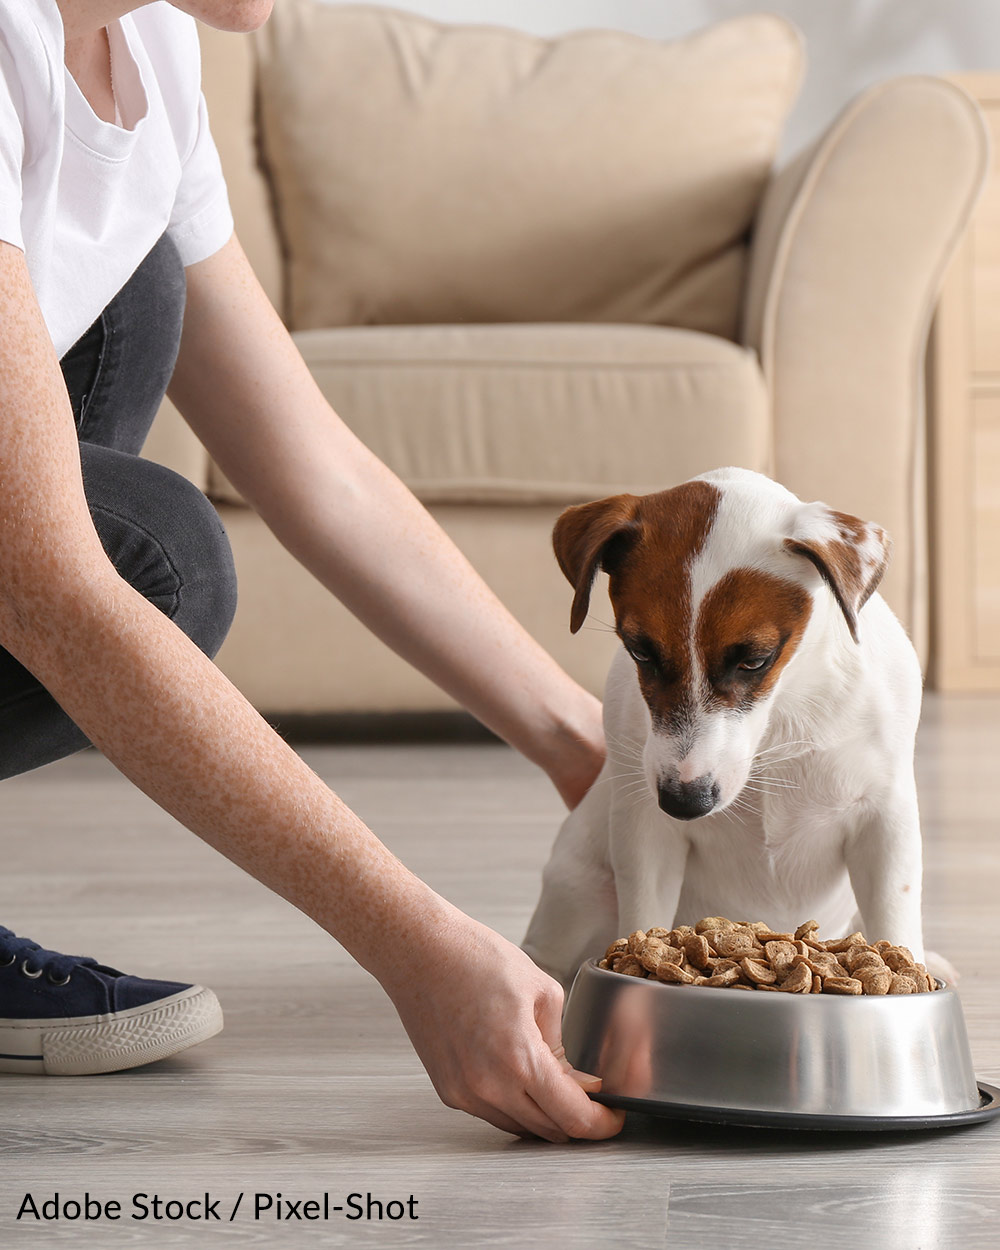 A number of pet foods have been recalled this year because of salmonella contamination.